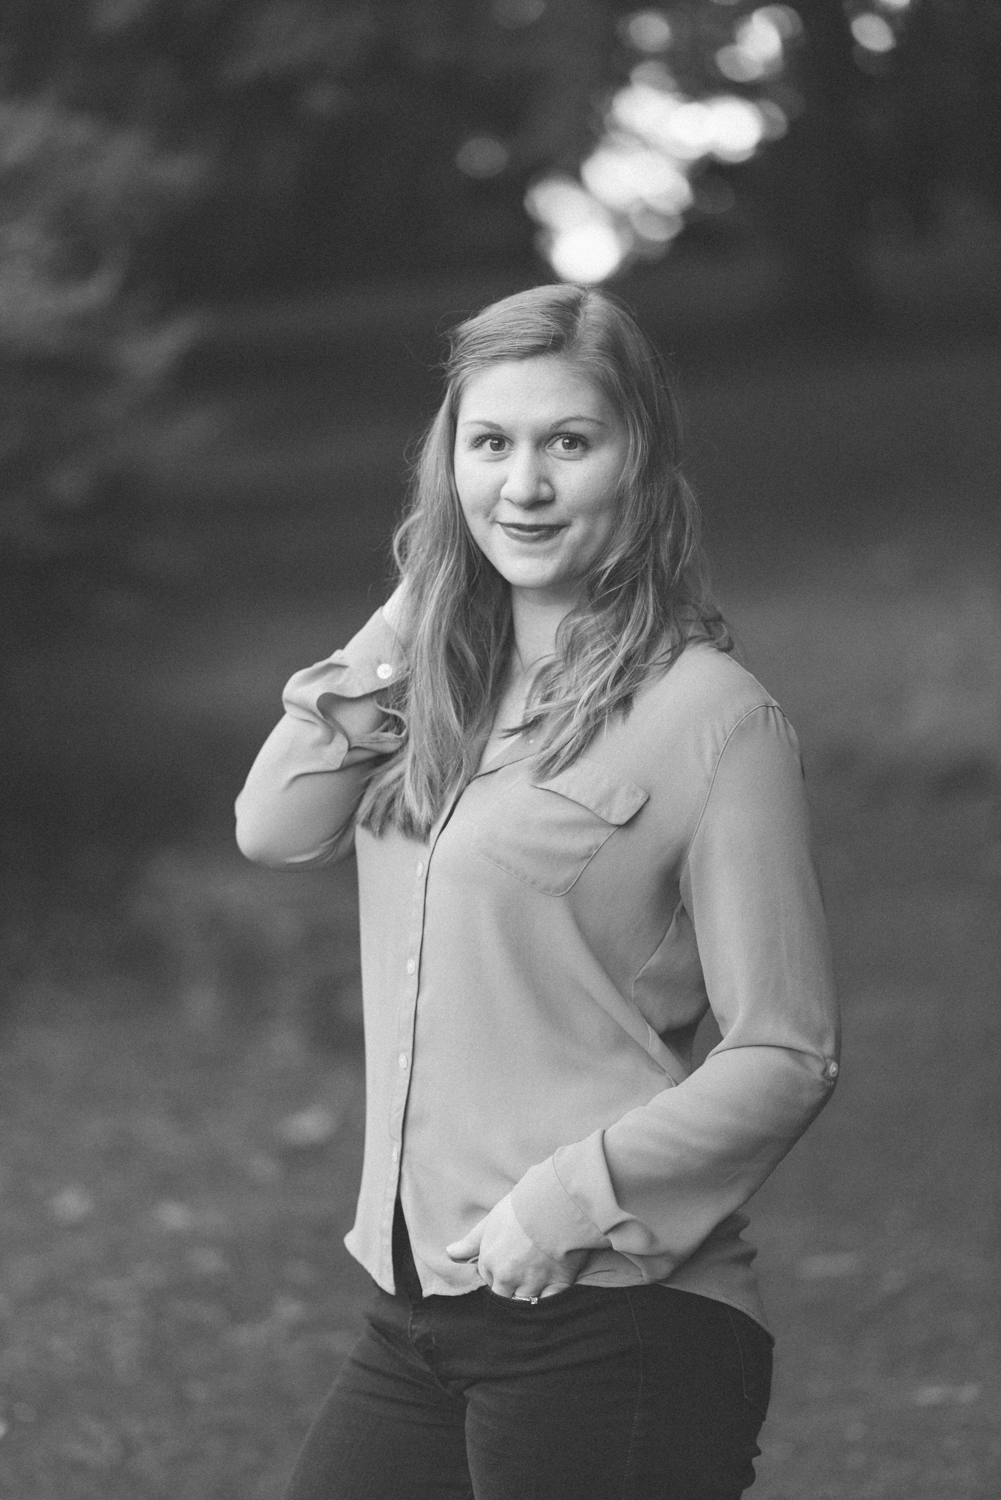 senior-portrait-photography-portland-oregon-laurelhurst-park-shelley-marie-photo-11.jpg